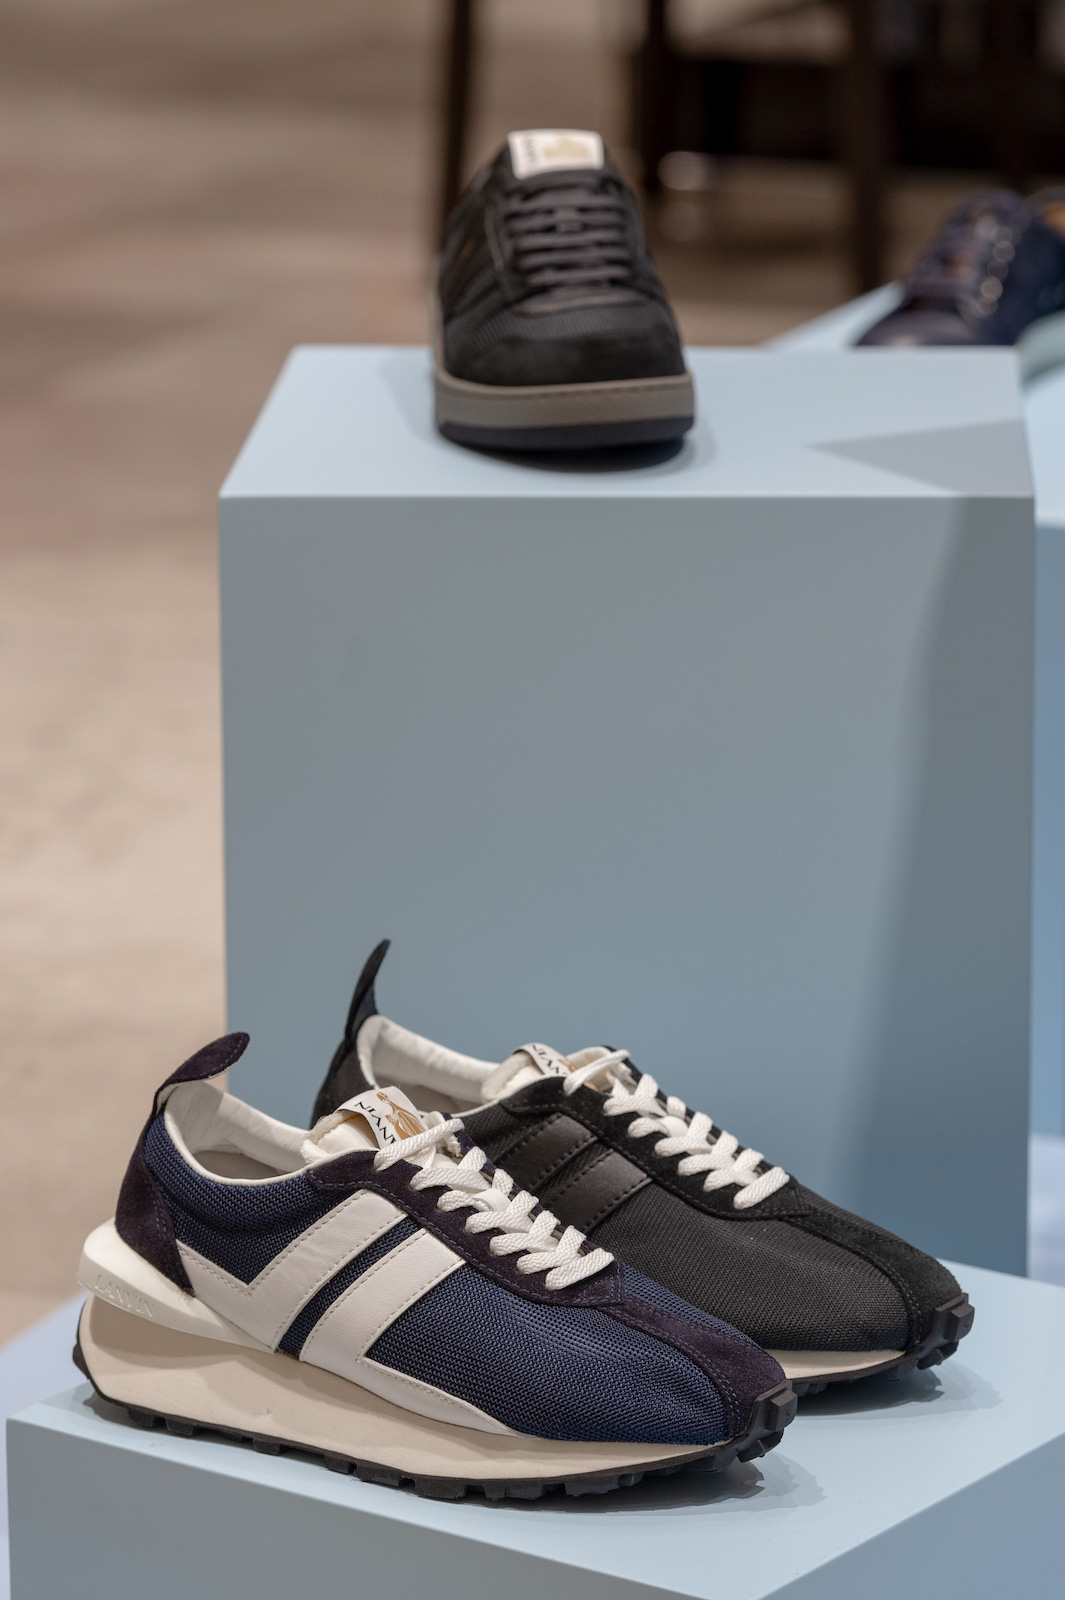 LANVIN SNEAKERS POP UP'I İLE BEYMEN ŞİDDETLİ CENTER'DA YERİNİ ALDI 2